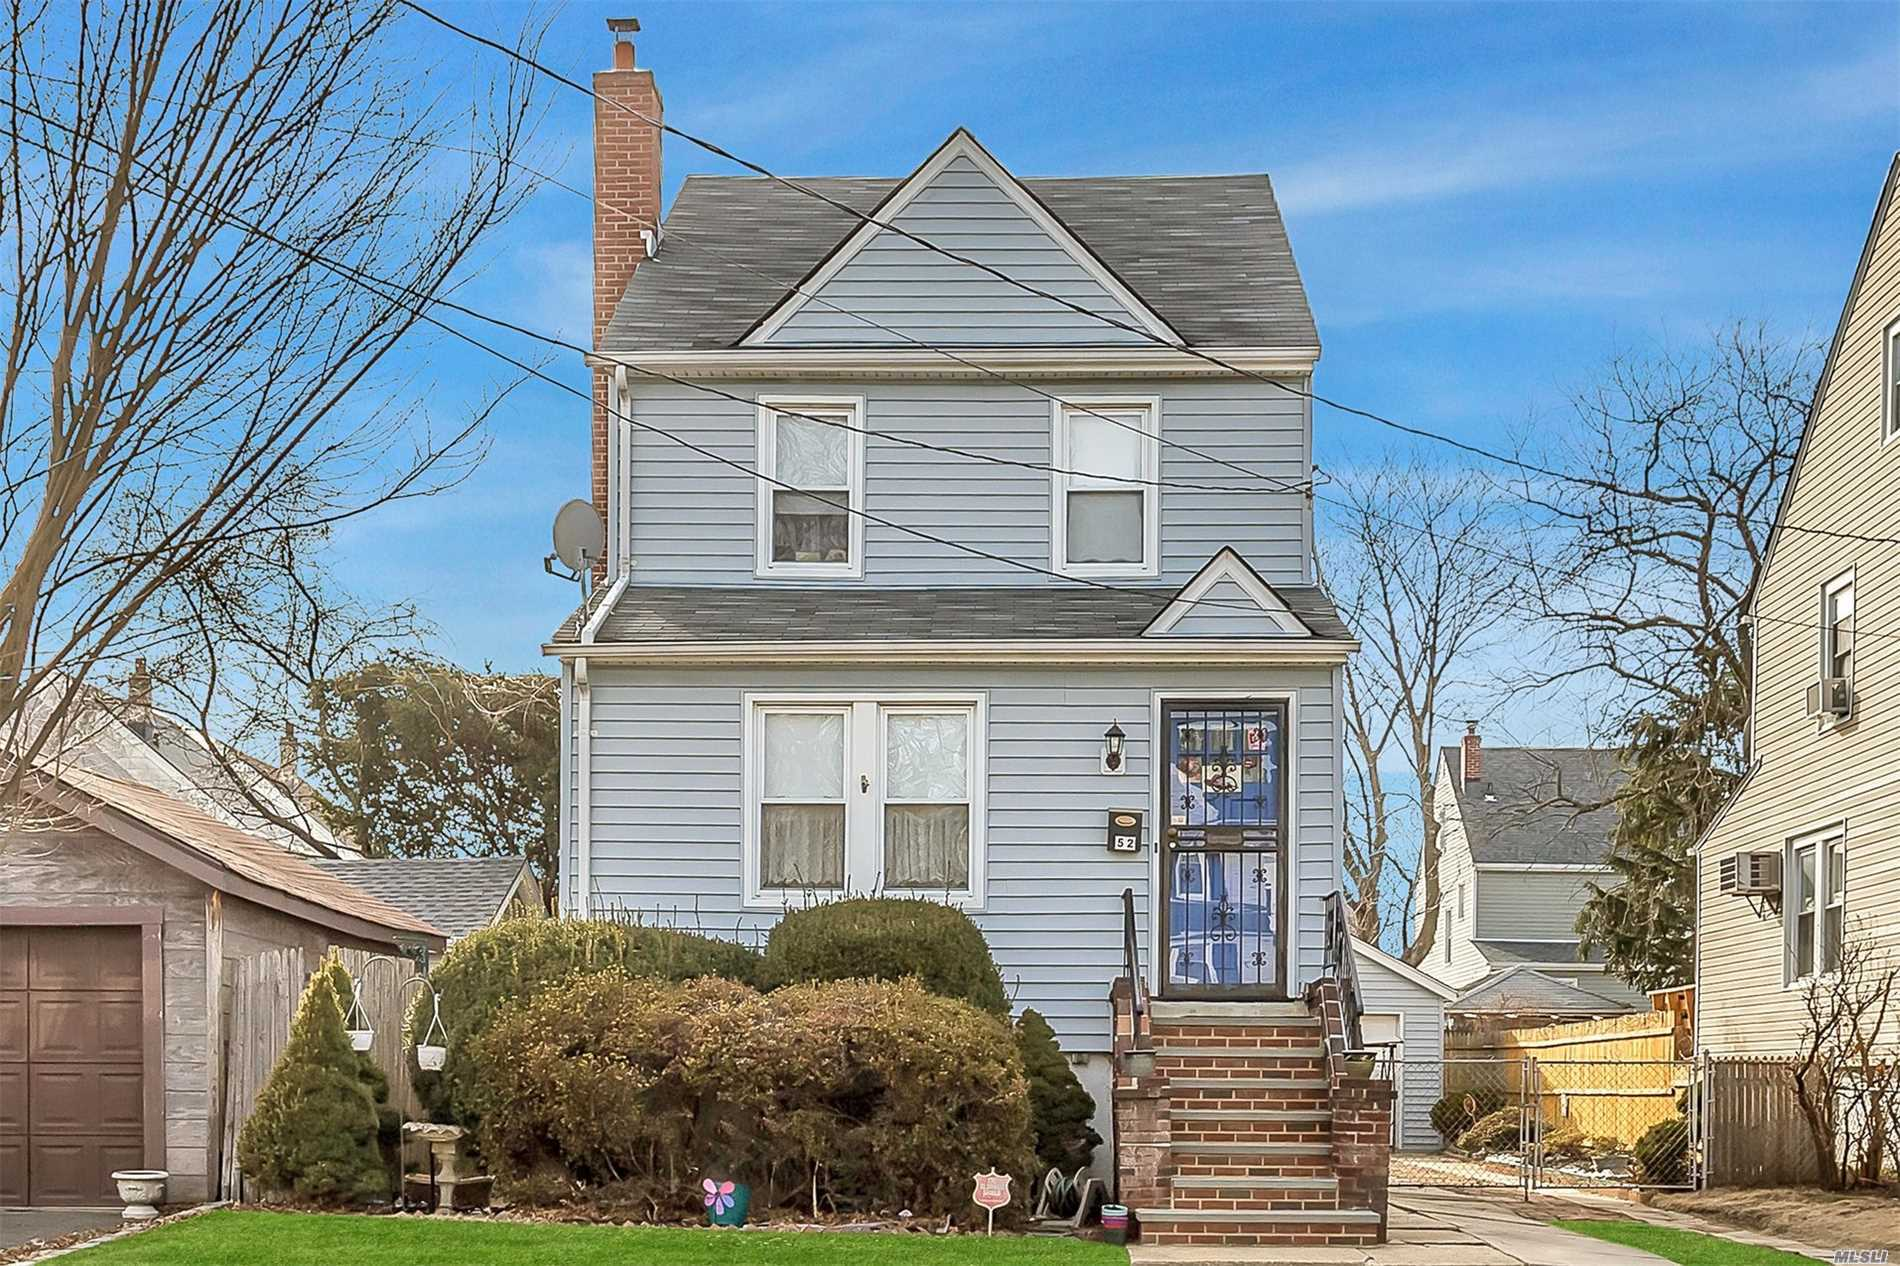 gibson colonial, convenient to LIRR, BUSES, 3 bedrooms,  basement, updates-3 bedroom, formal dining room, garage, low taxes